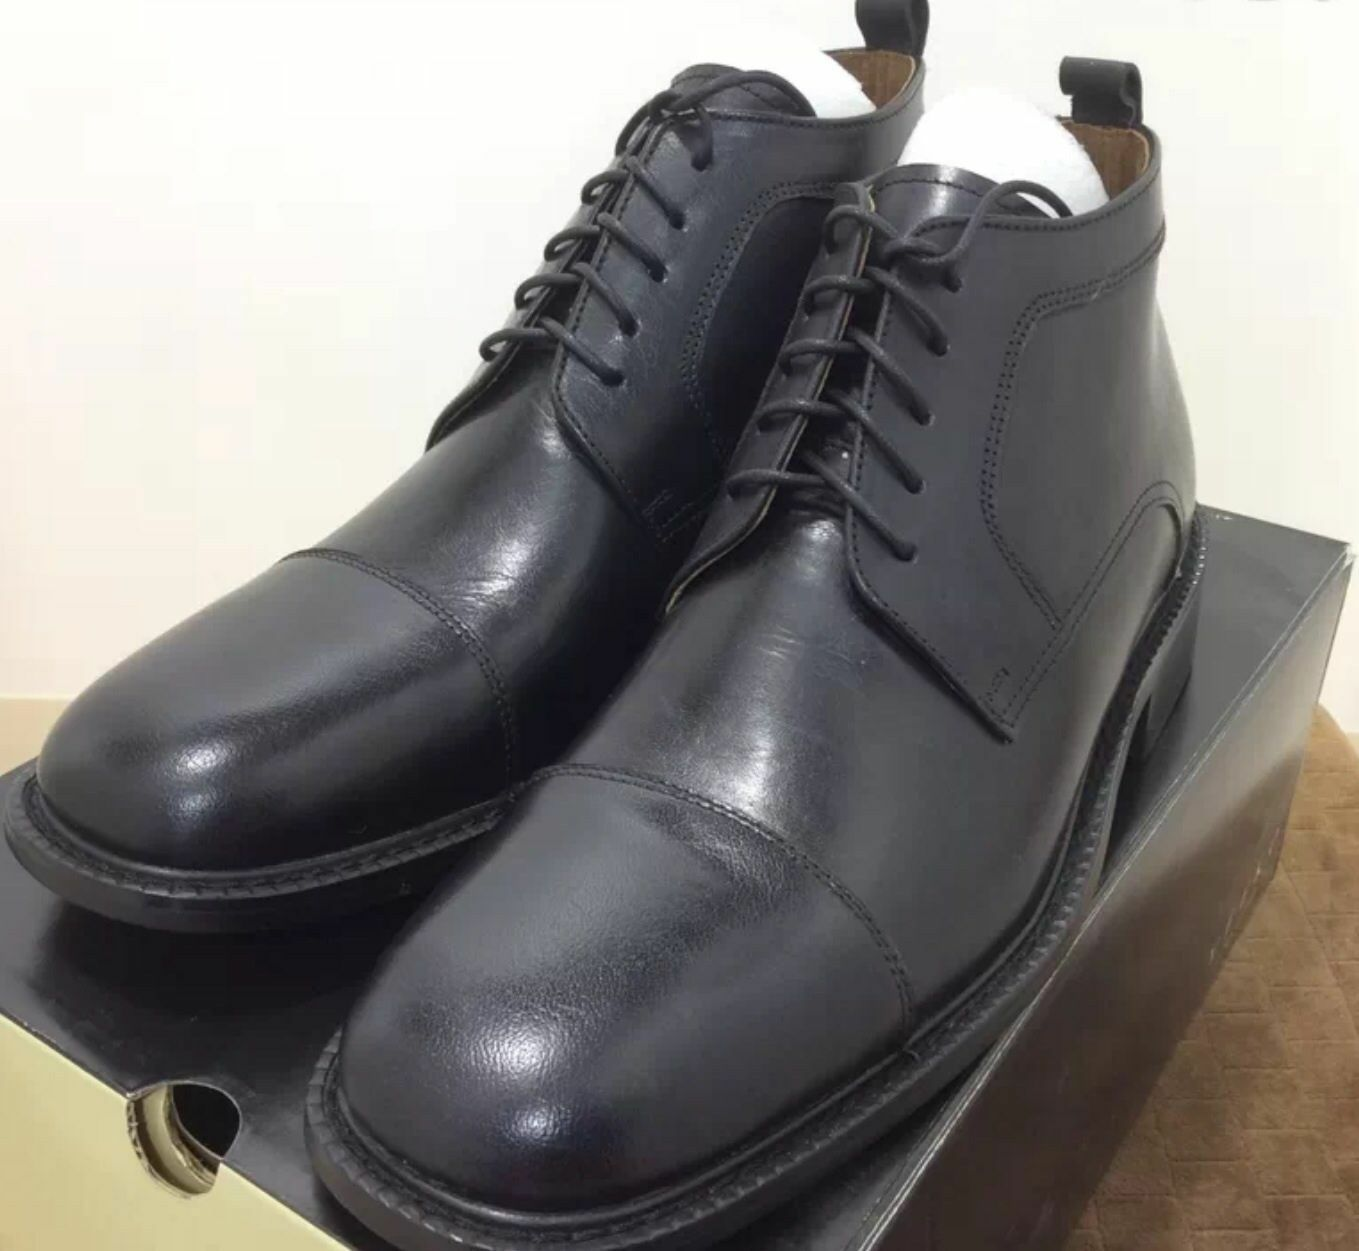 Mens Dress Boots Leather lace up Veeko Black 69.99 ea pr New in Box.